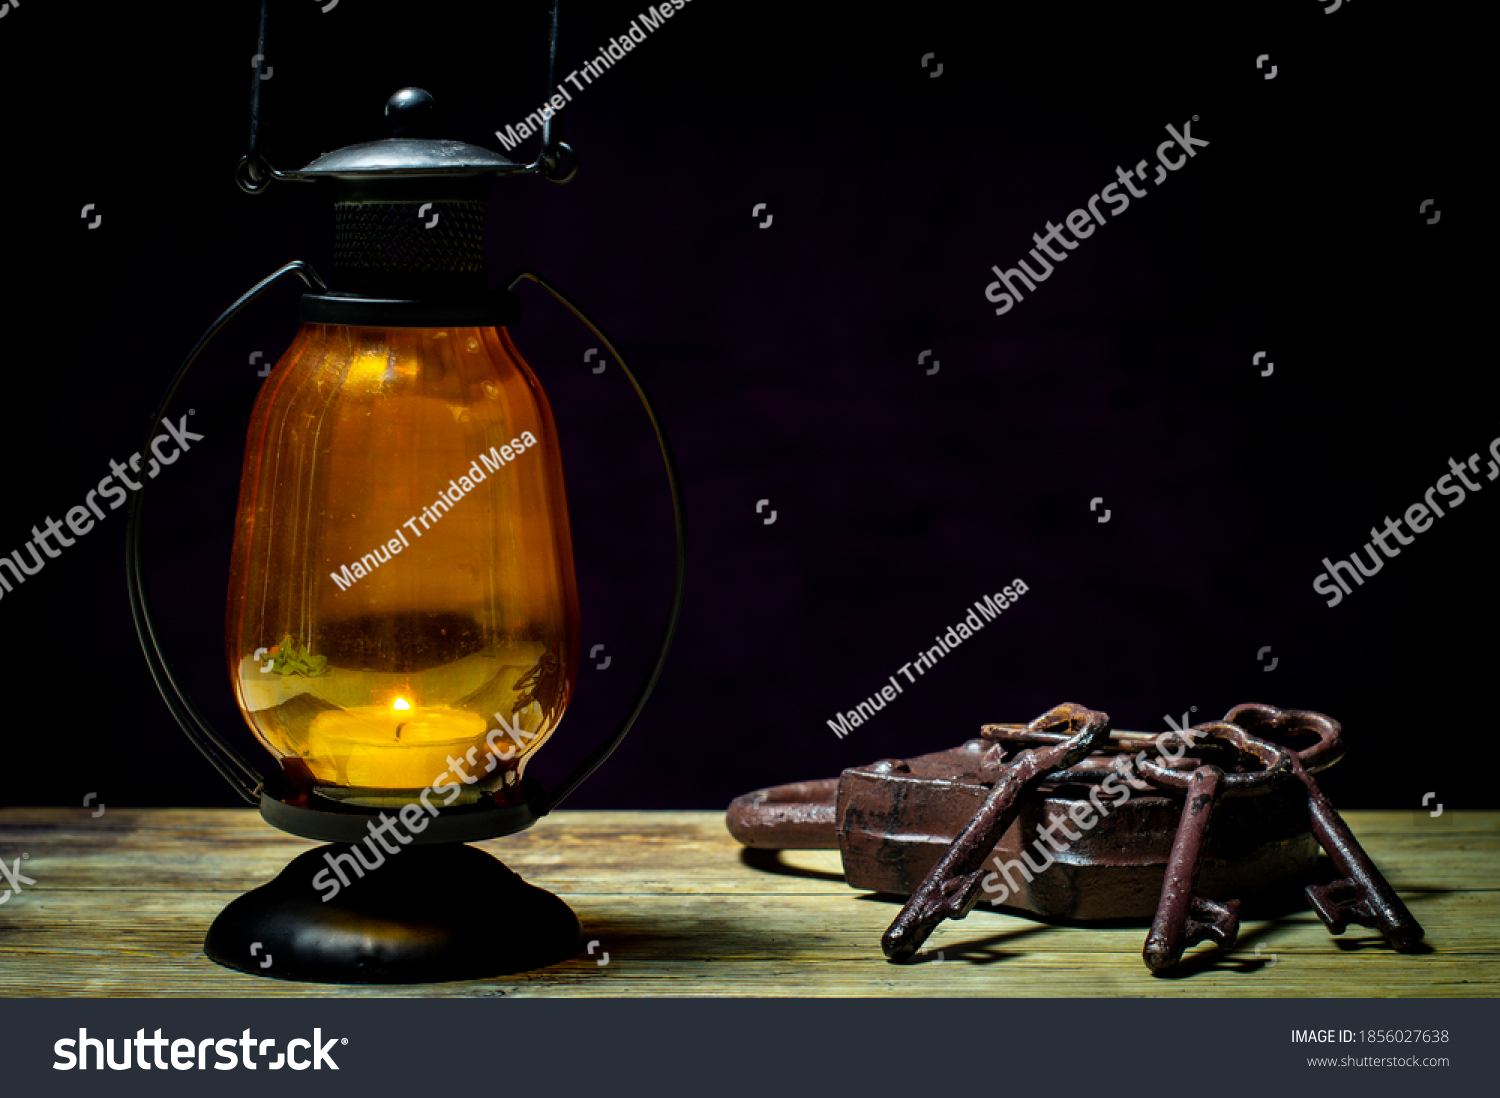 Candle lamp next to a padlock and keys, on dark background